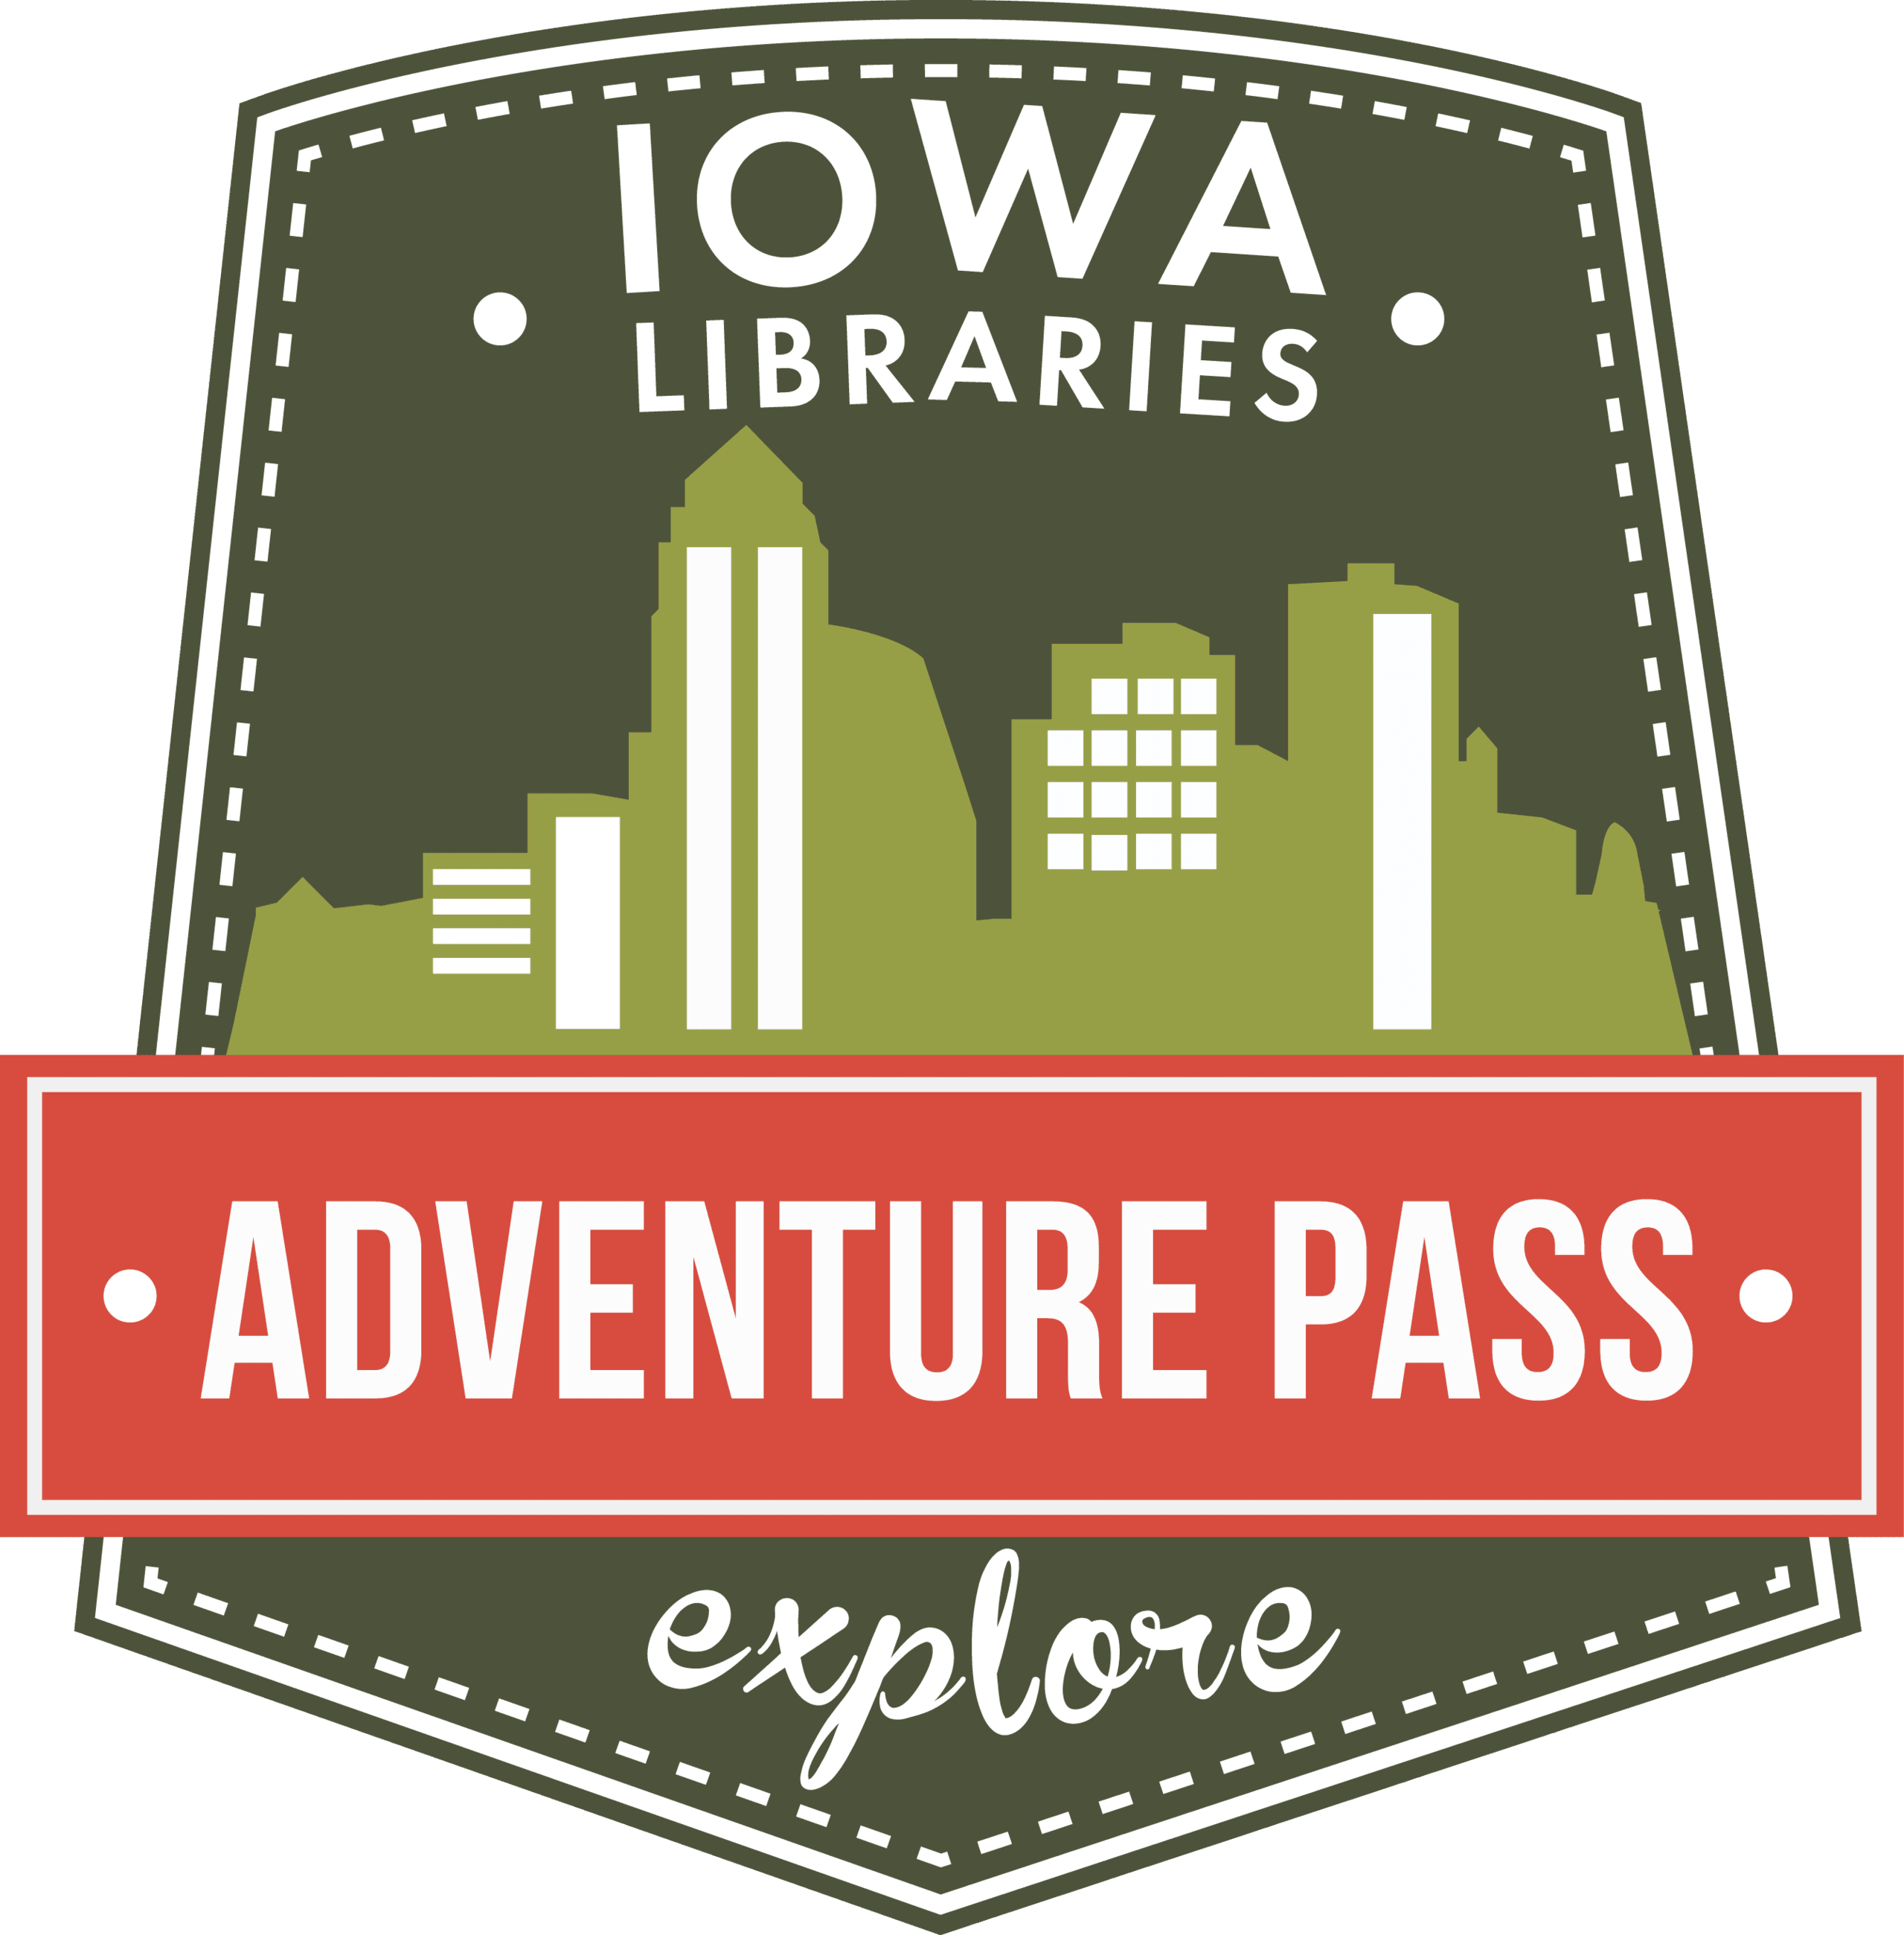 IowaLibrariesAdventurePass Opens in new window